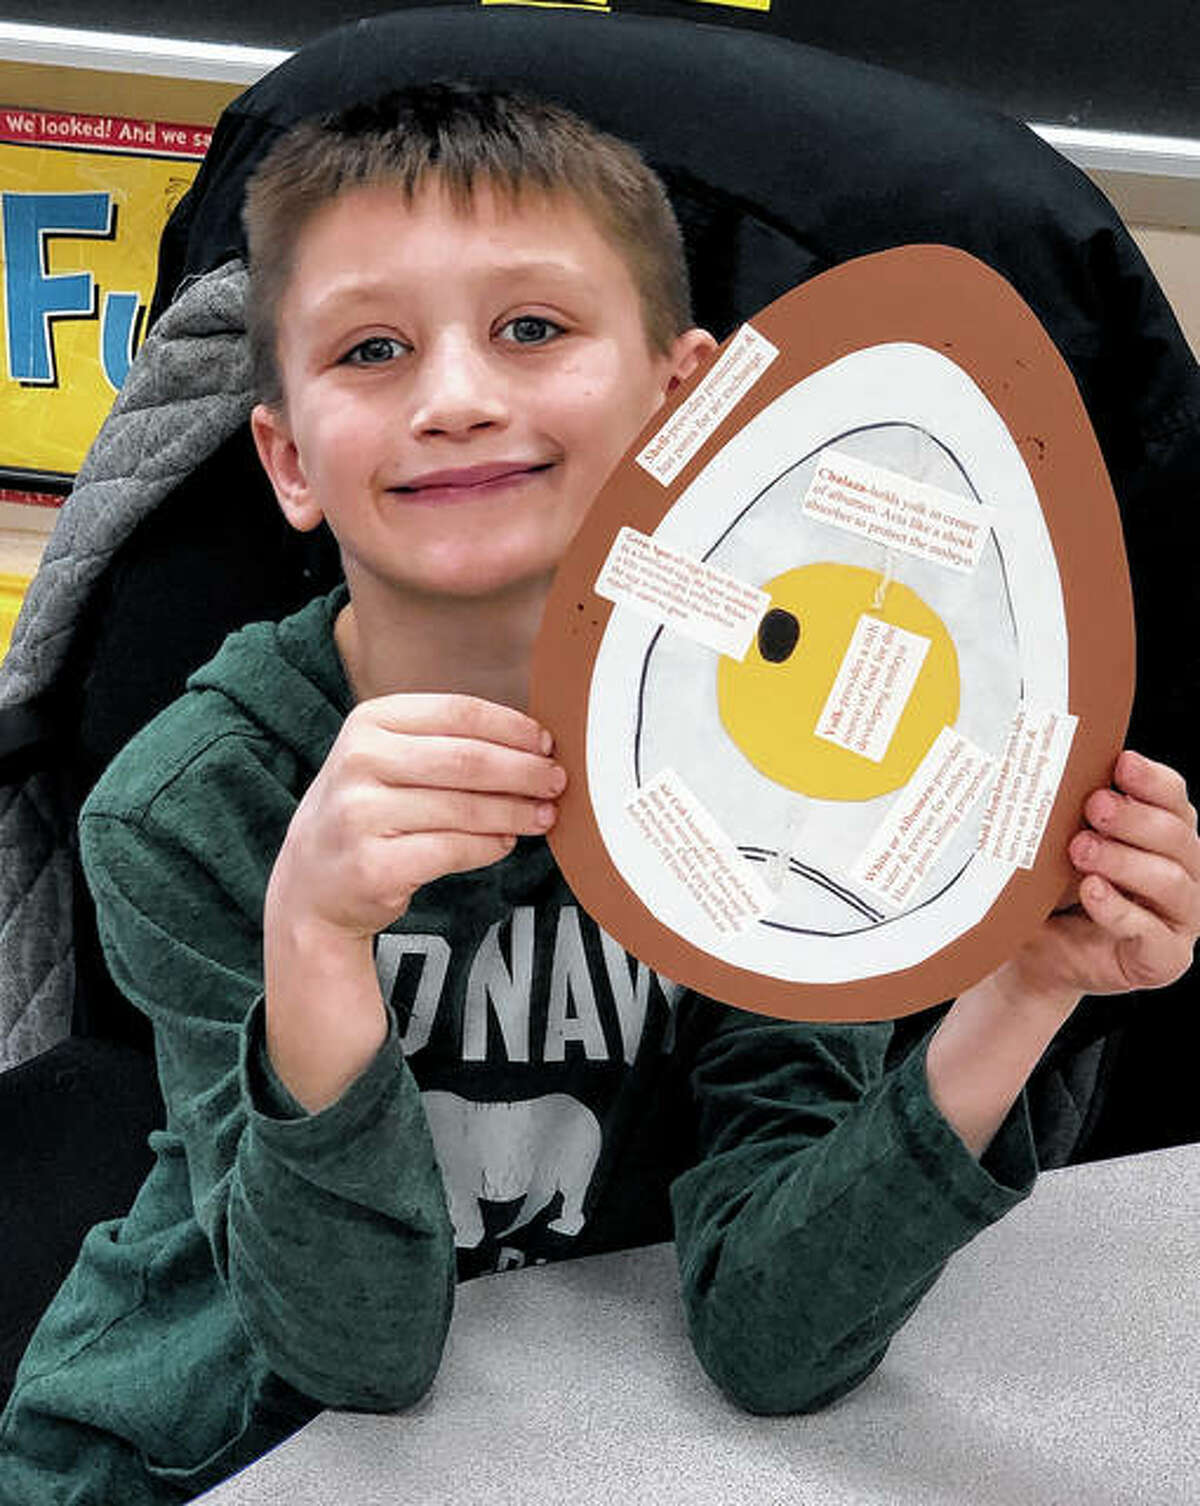 The Pike-Scott Agriculture in the Classroom program recently visited third-graders at Pleasant Hill and Winchester elementary schools to offer a lesson on poultry. Easton Hansen, a student in Mrs. Evans' class at Pleasant Hill, completed his craft project on the anatomy of an egg.